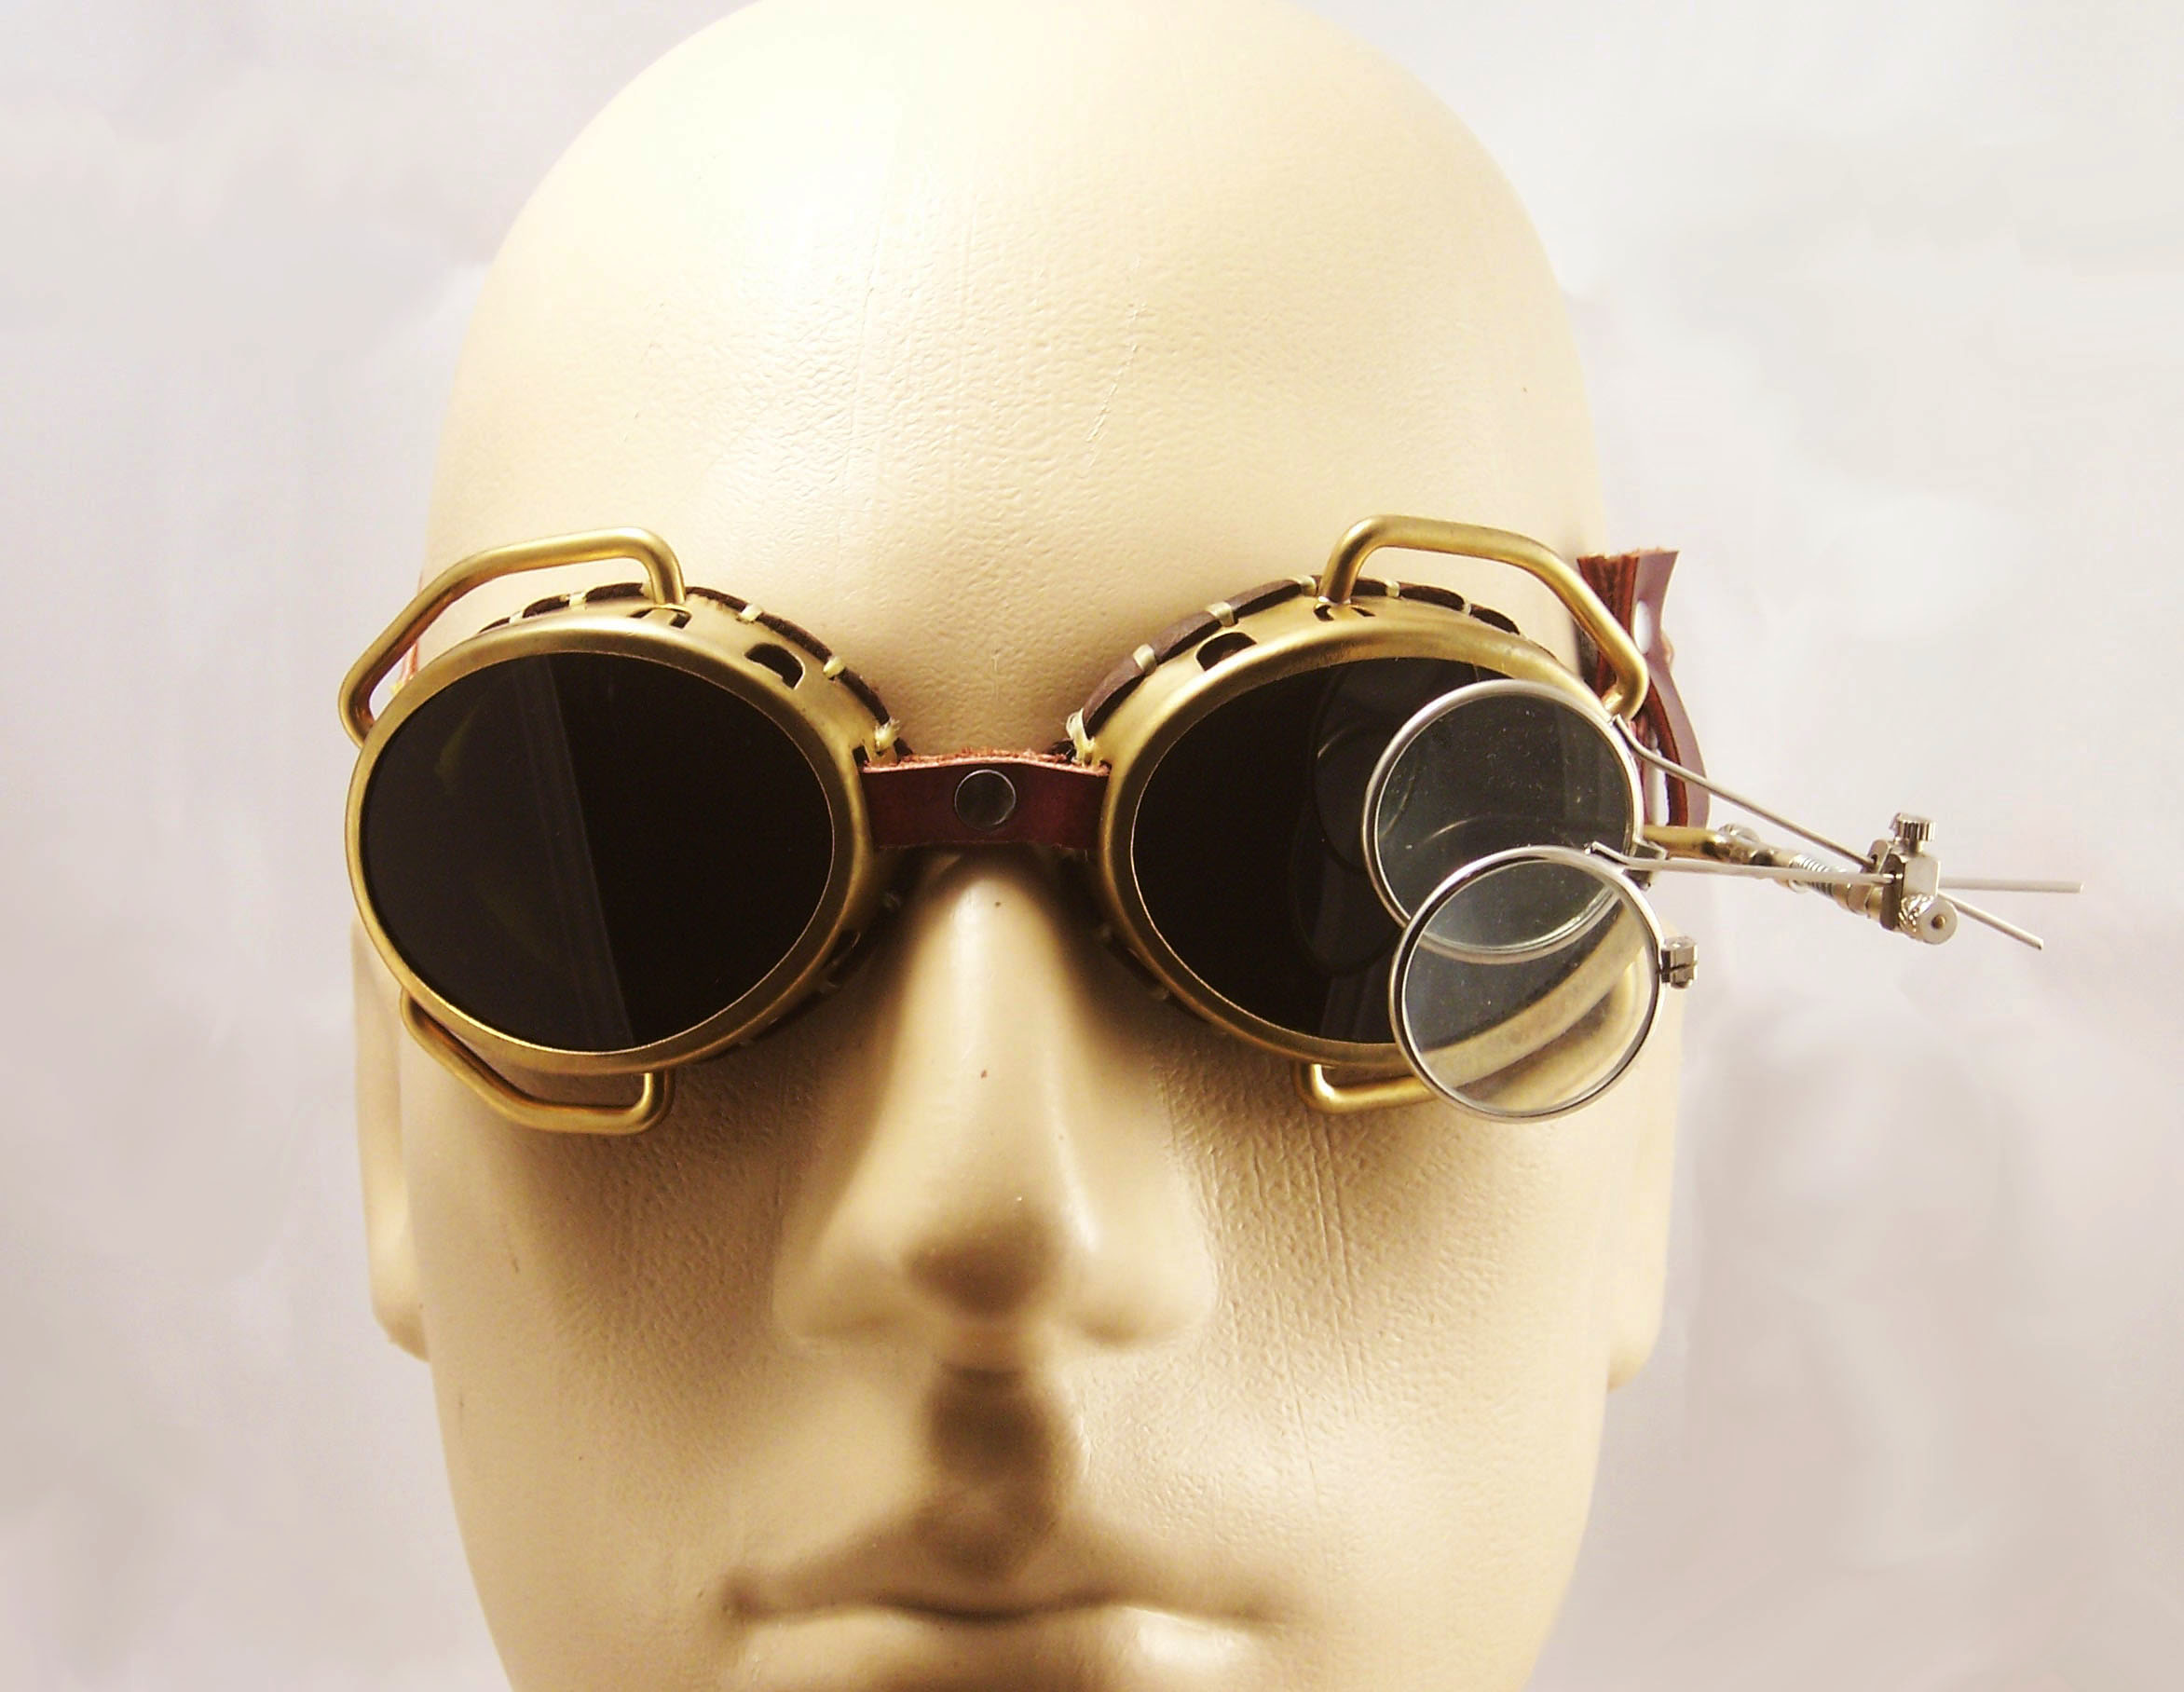 rebelsmarket_steampunk_goggles_solid_brass_with_flip_down_magnifiers_and_conduits_goggles_2.jpg